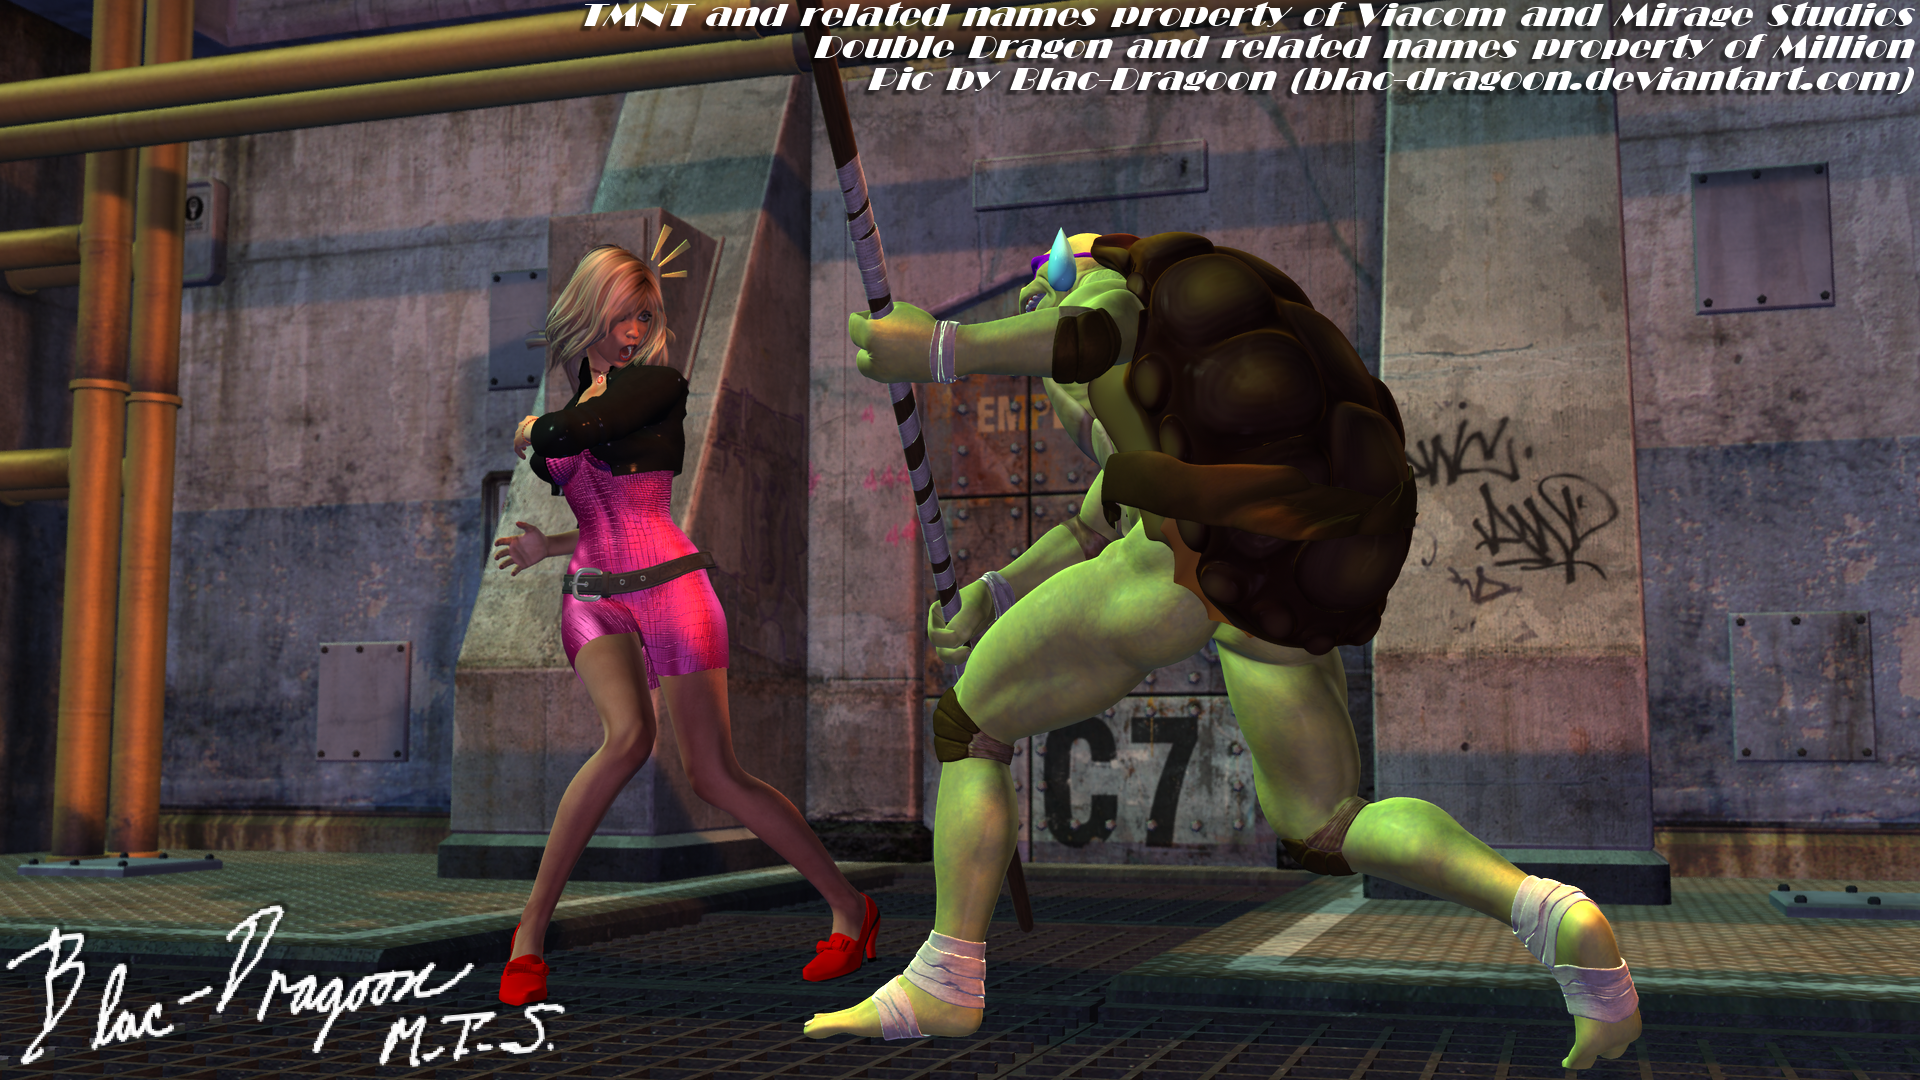 Tmnt Vs Double Dragon Marian Encounters Donny By Blac Dragoon On